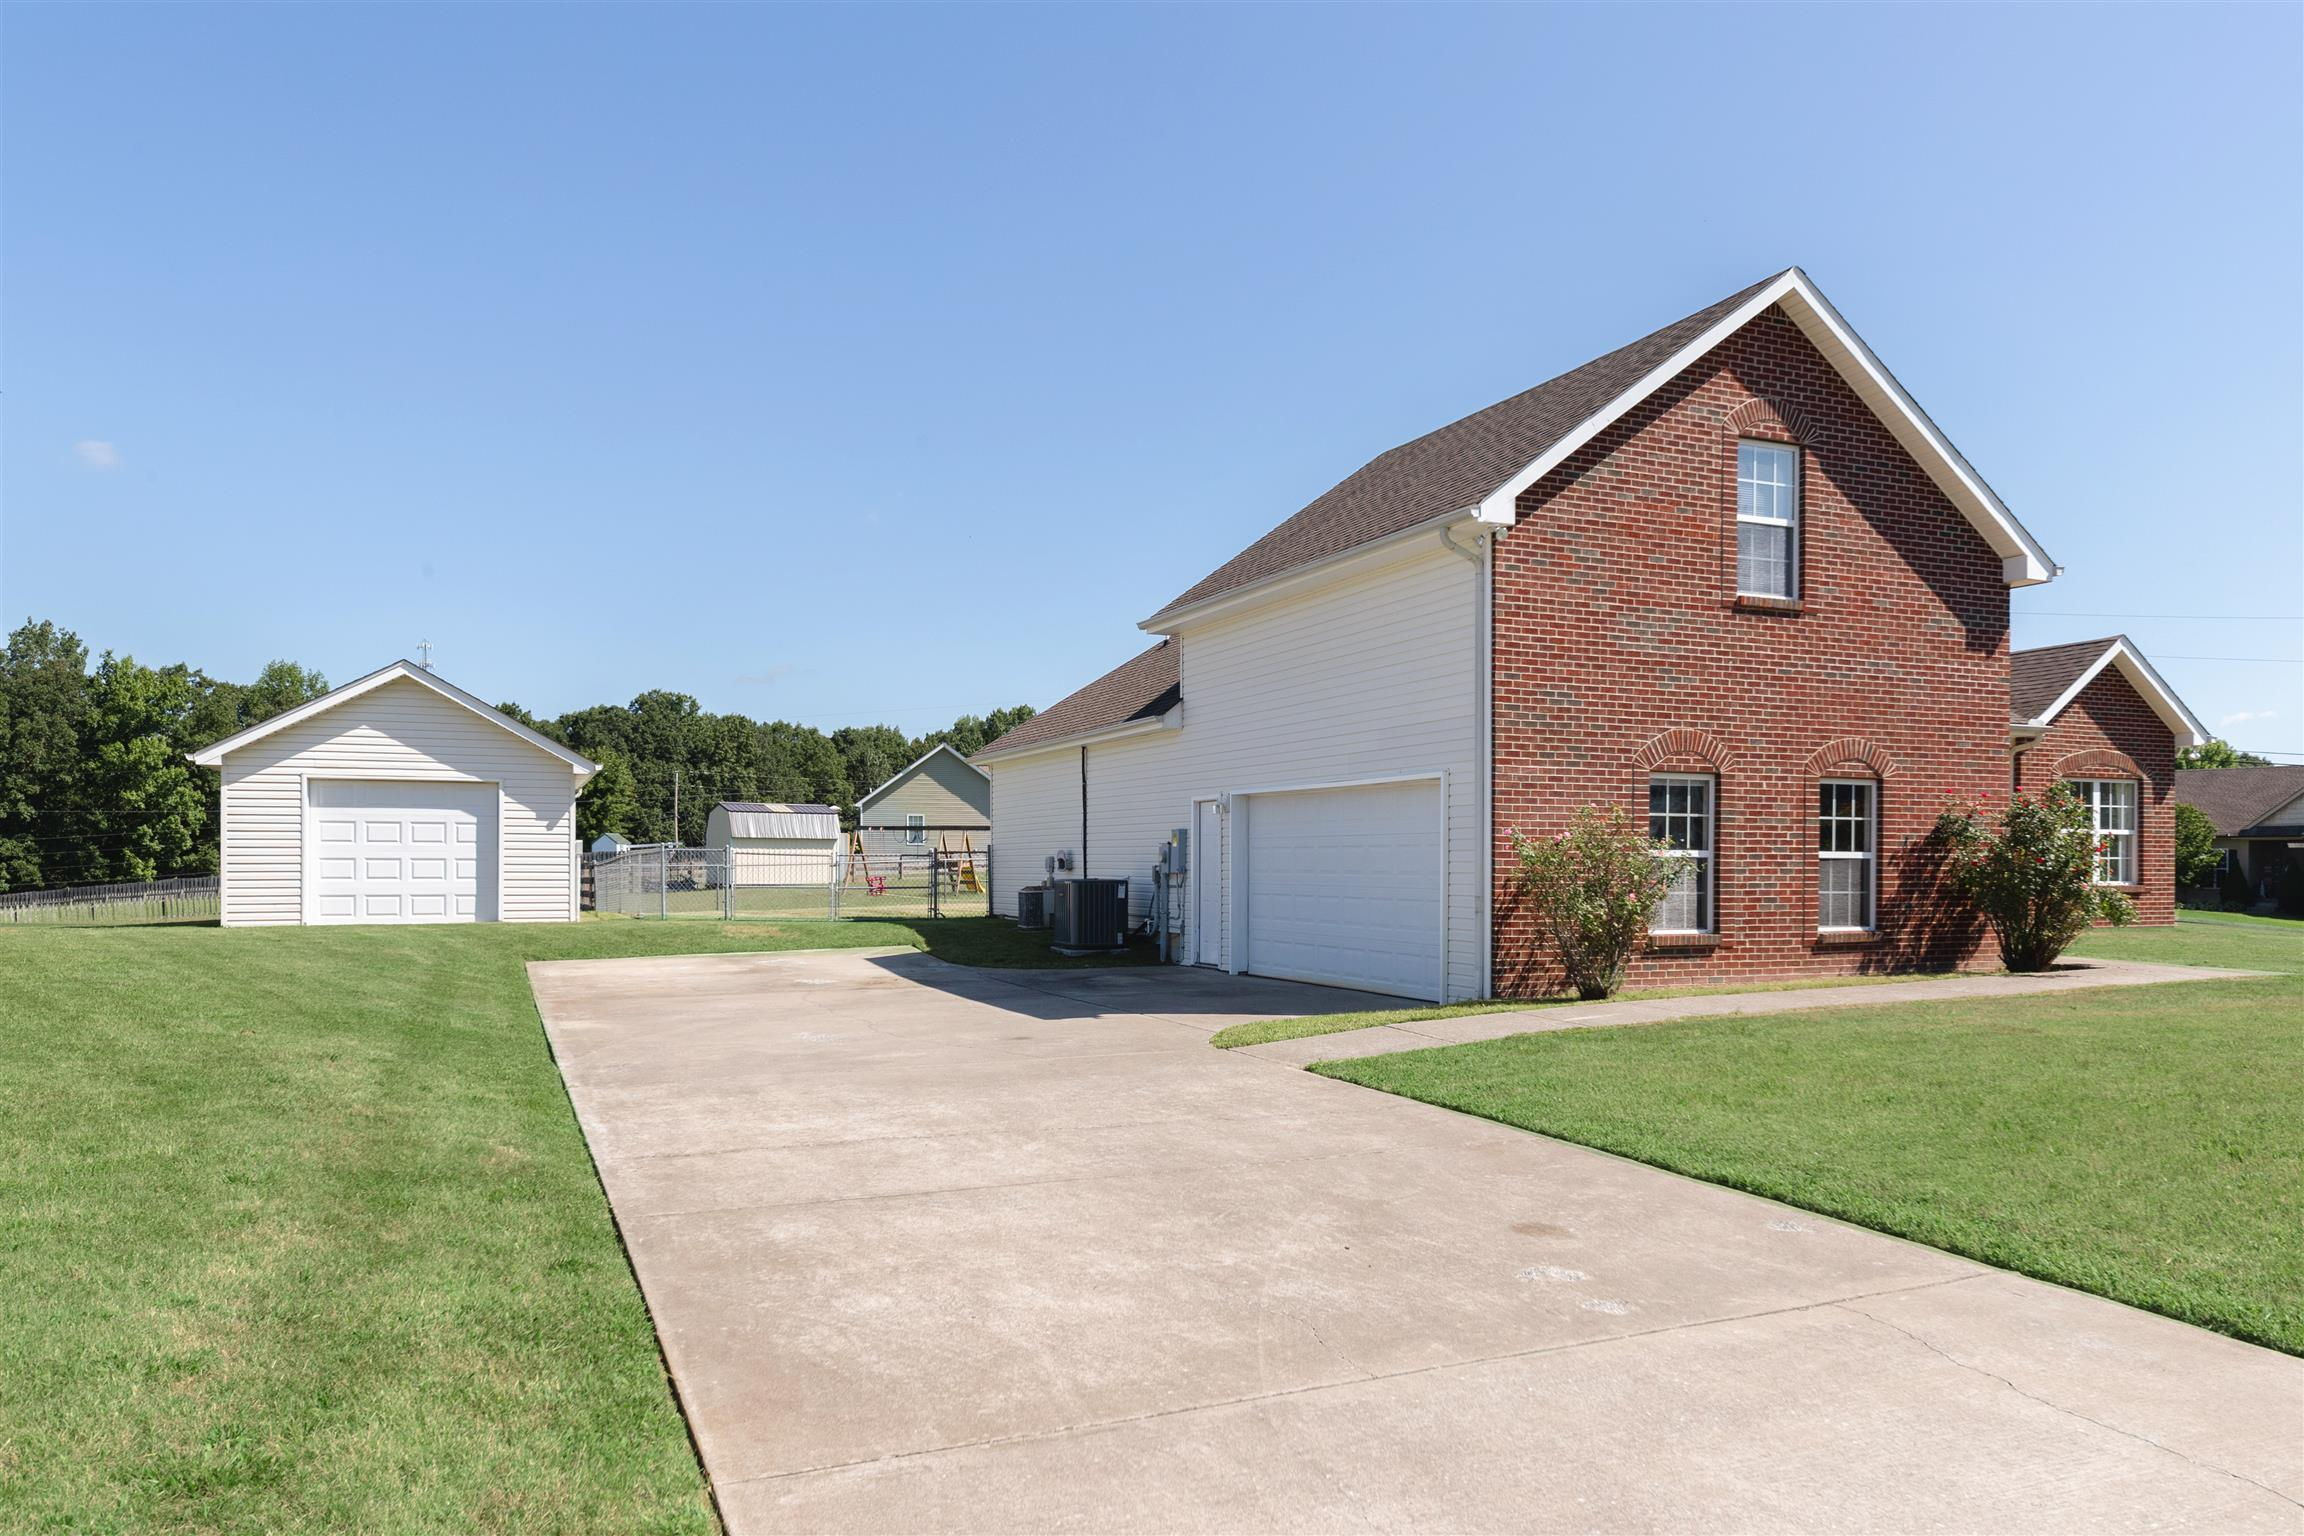 111 Marty Ln, White Bluff, TN 37187 - White Bluff, TN real estate listing